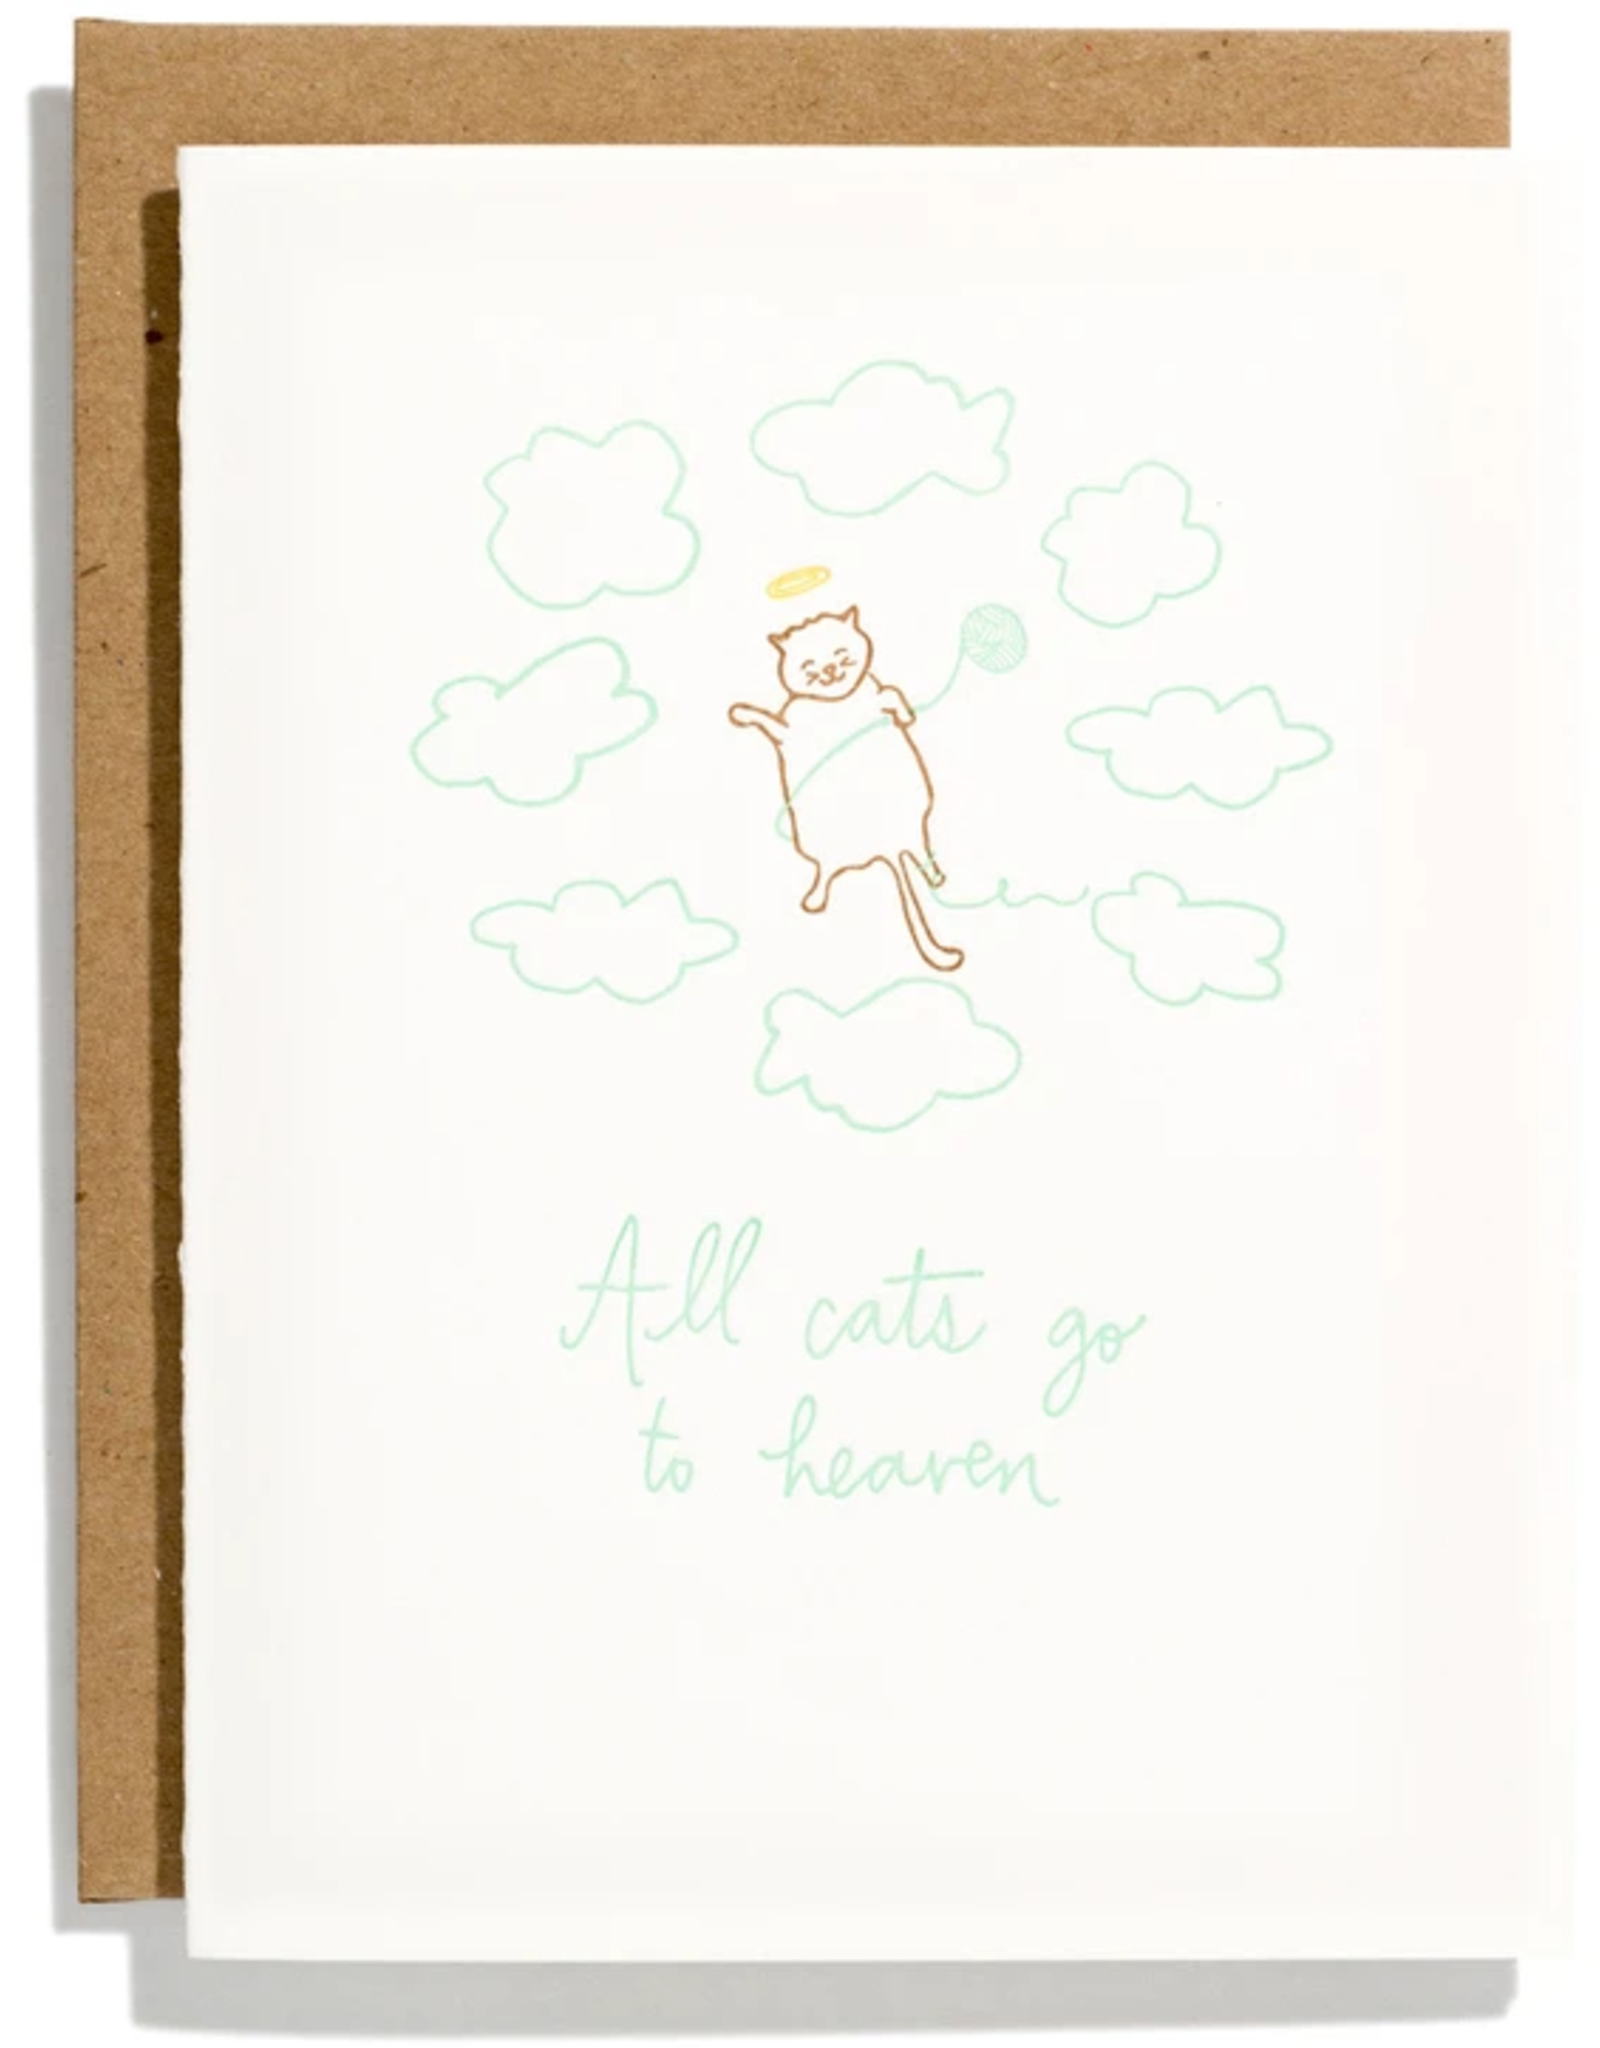 Iron Curtain Press IRON CURTAIN PRESS ALL CATS GO TO HEAVEN GREETING CARD